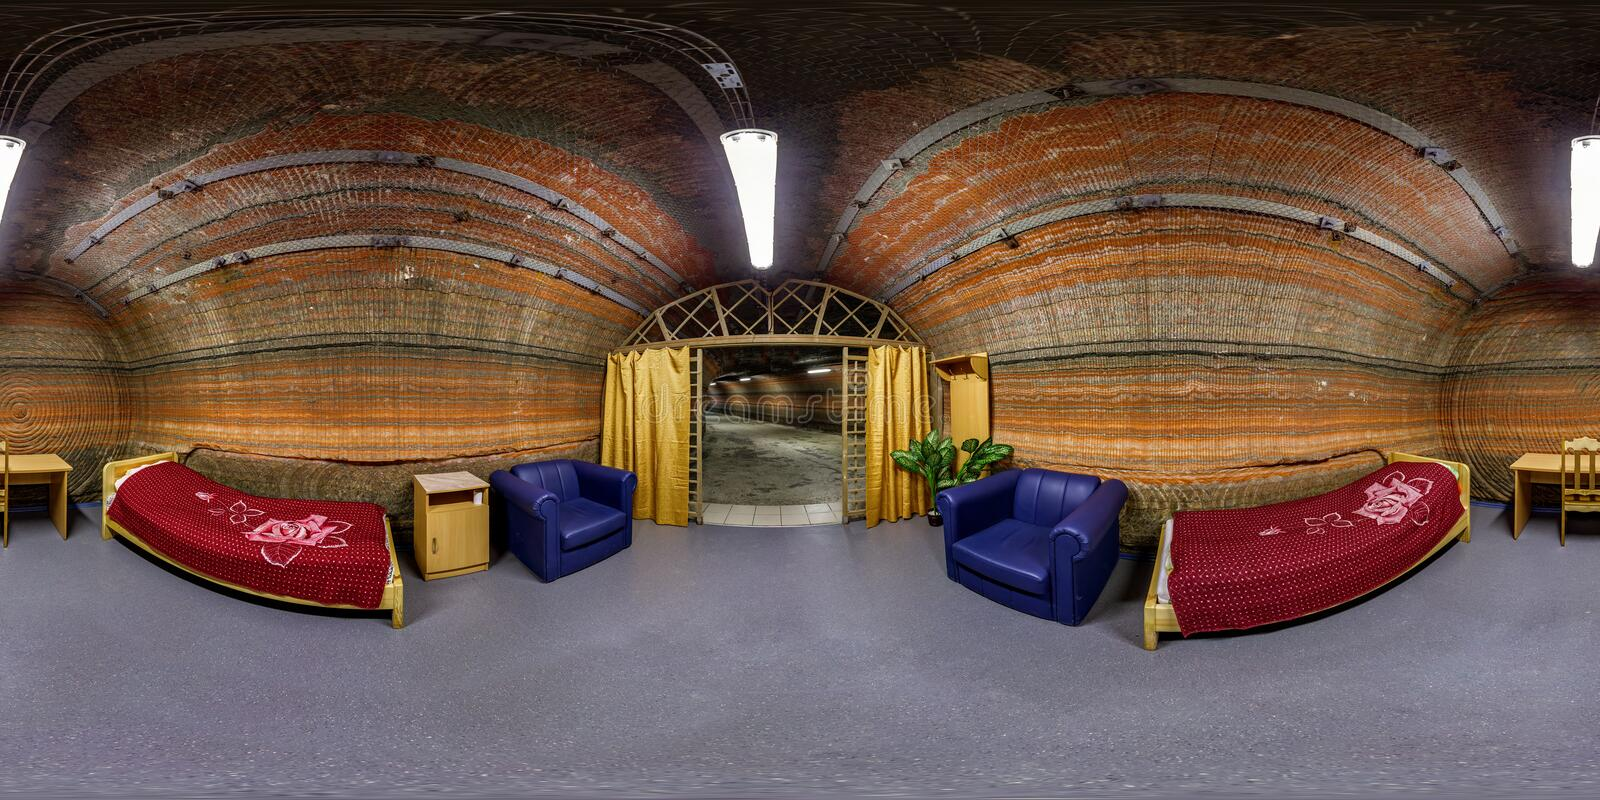 SOLIGORSK, BELARUS - MARCH, 2014: Full seamless spherical 360 degrees angle panorama interior of bedroom in speleo clinic caves of. Potassium salt in royalty free stock photography